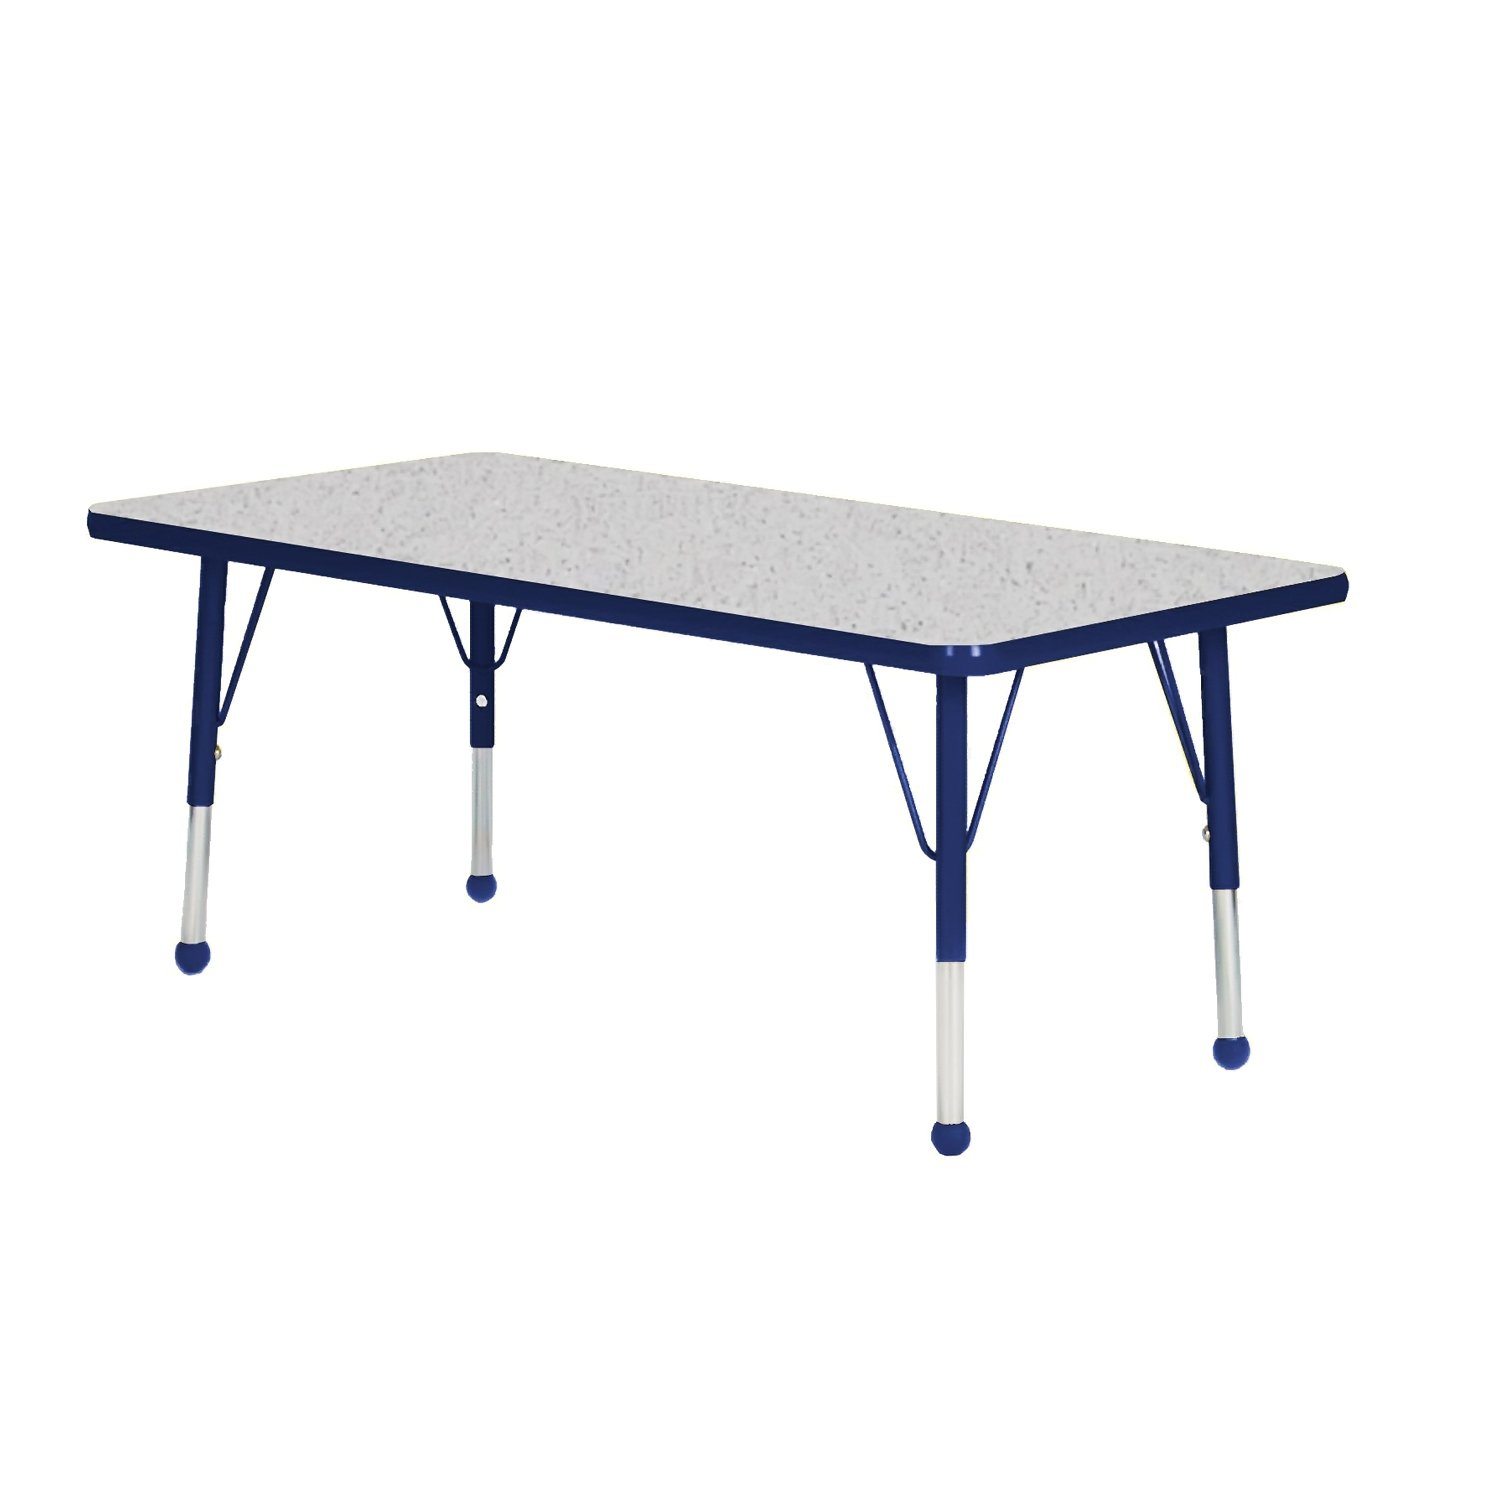 48'' x 30'' Rectangular Classroom Table Side Finish: Navy, Table Size: Standard 21''-30'' Ball Glide, Top Color: Gray Nebula